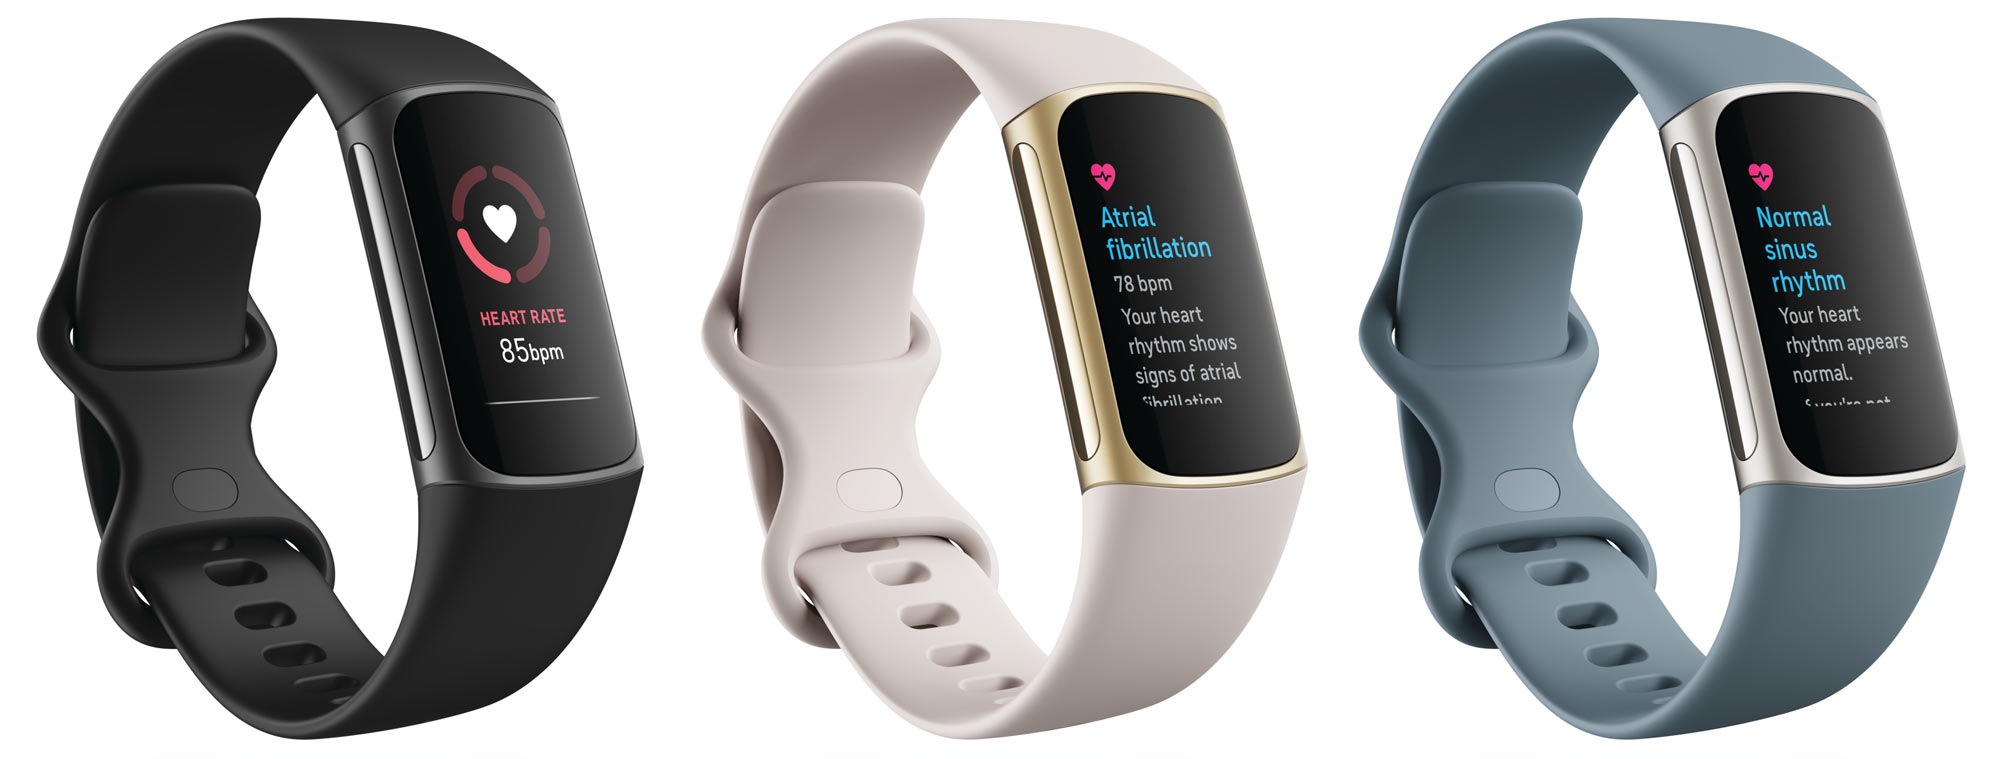 heart rate and heart health tracking screens on fitbit charge 5 fitness tracker